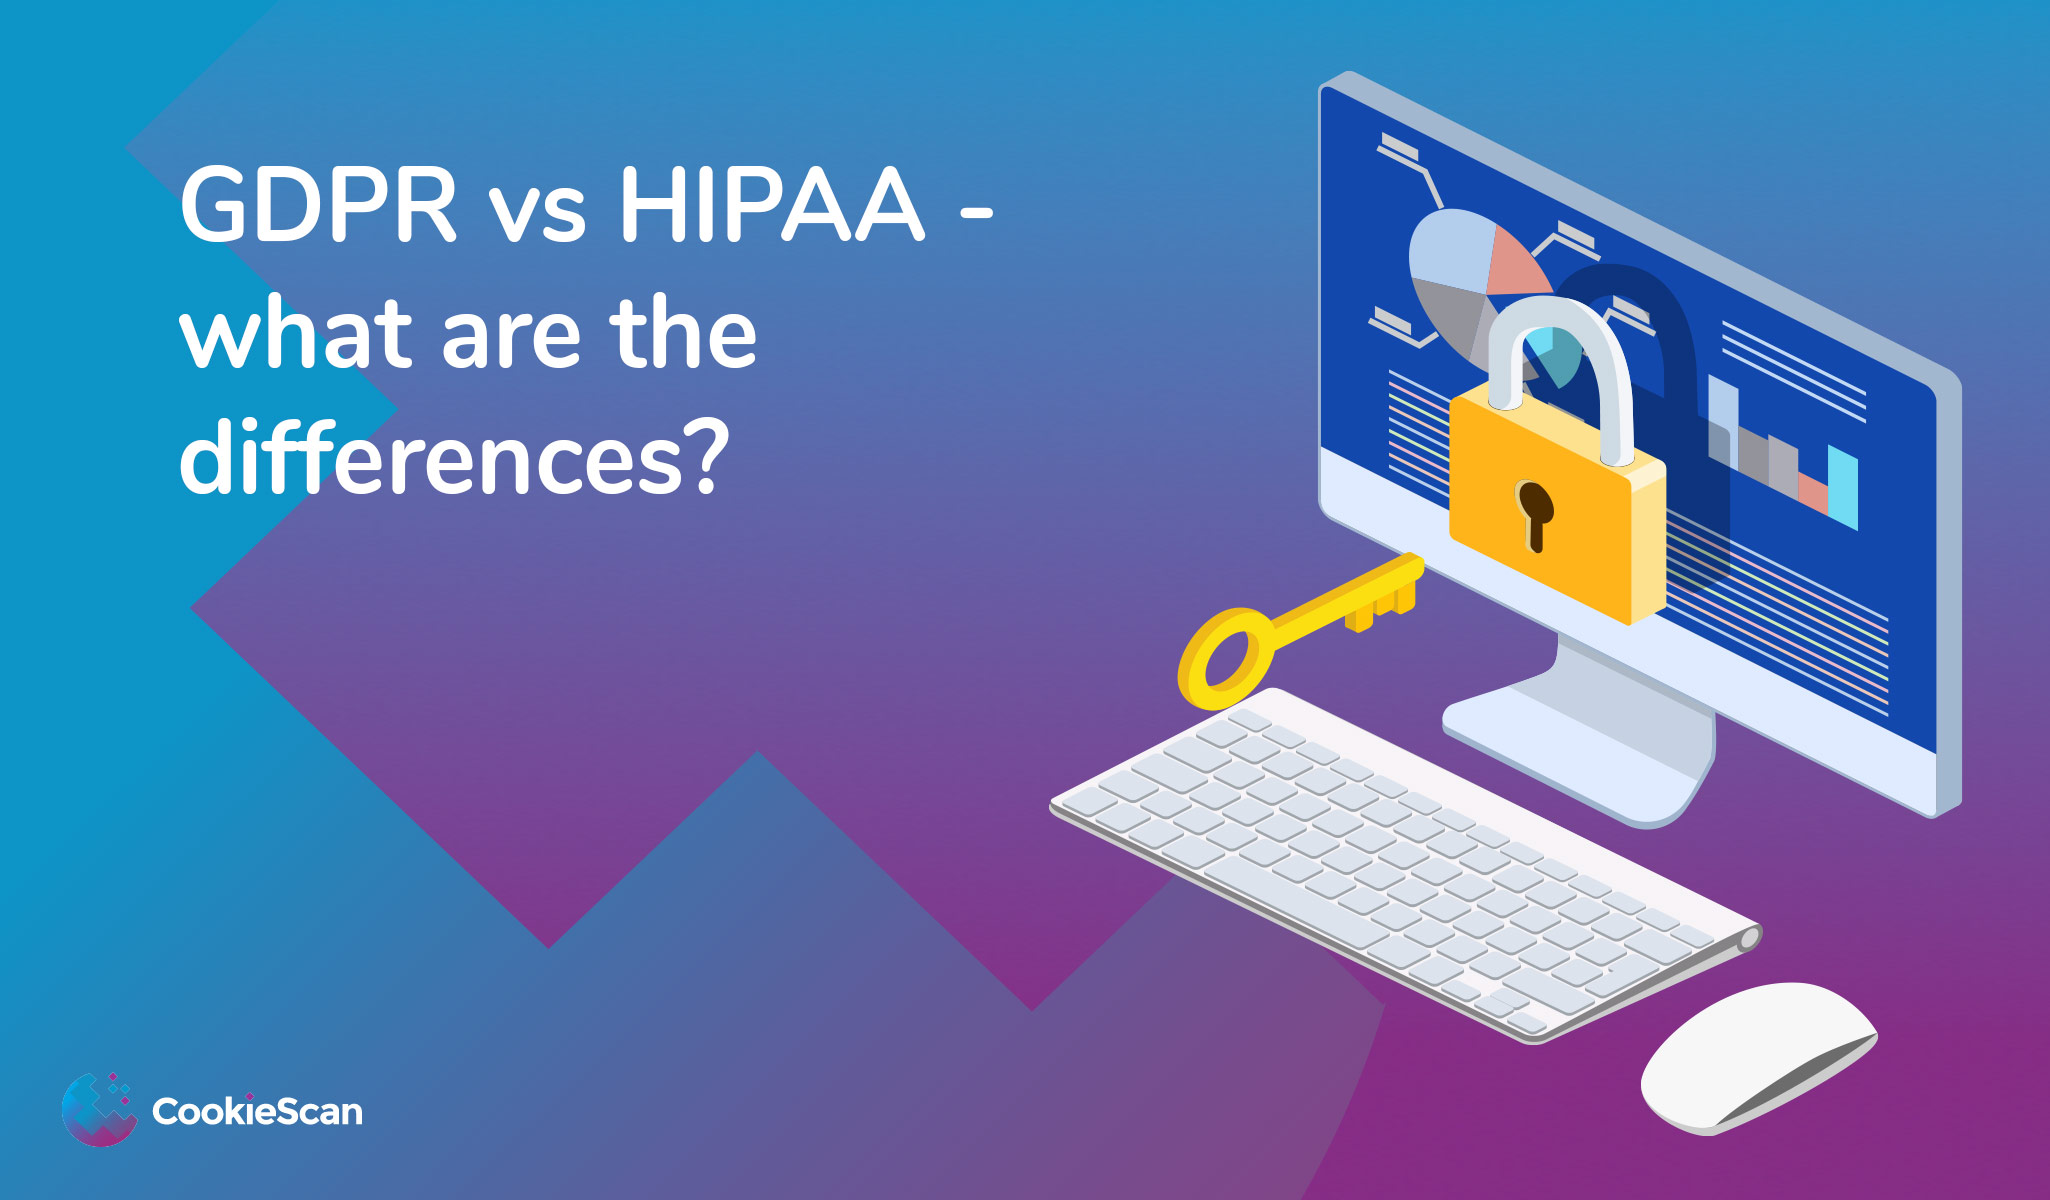 GDPR vs HIPAA - what are the differences?